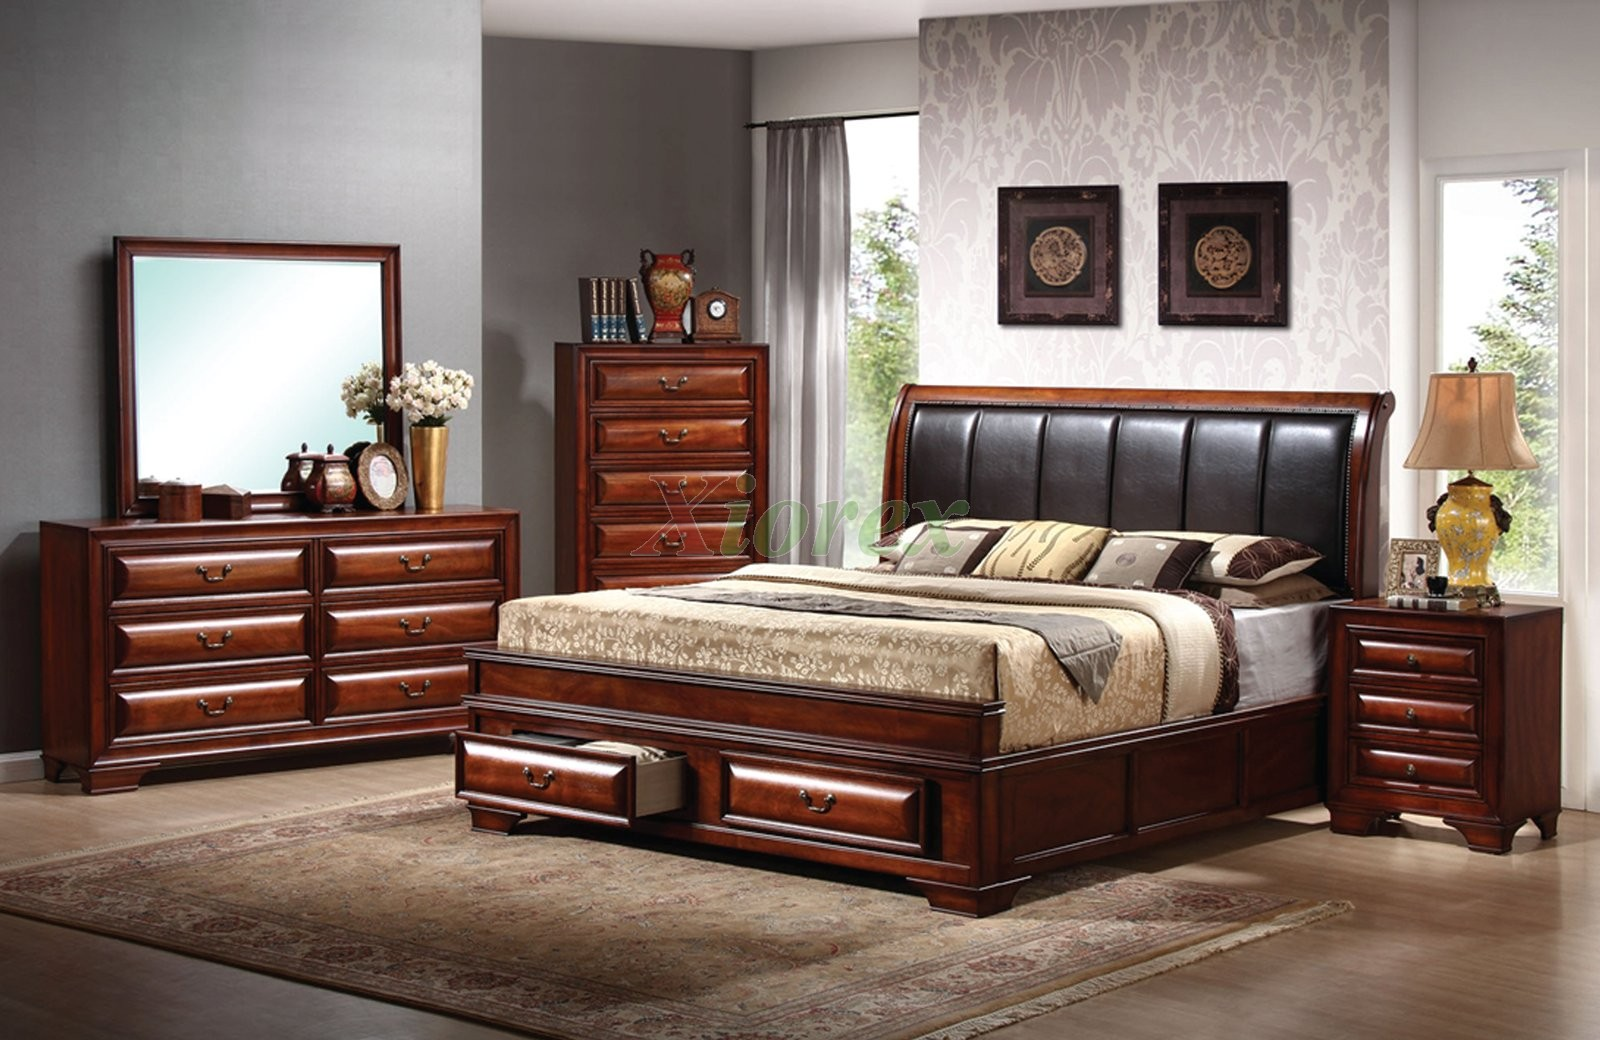 Platform Bedroom Furniture Set with Leather Headboard Beds 115 ...